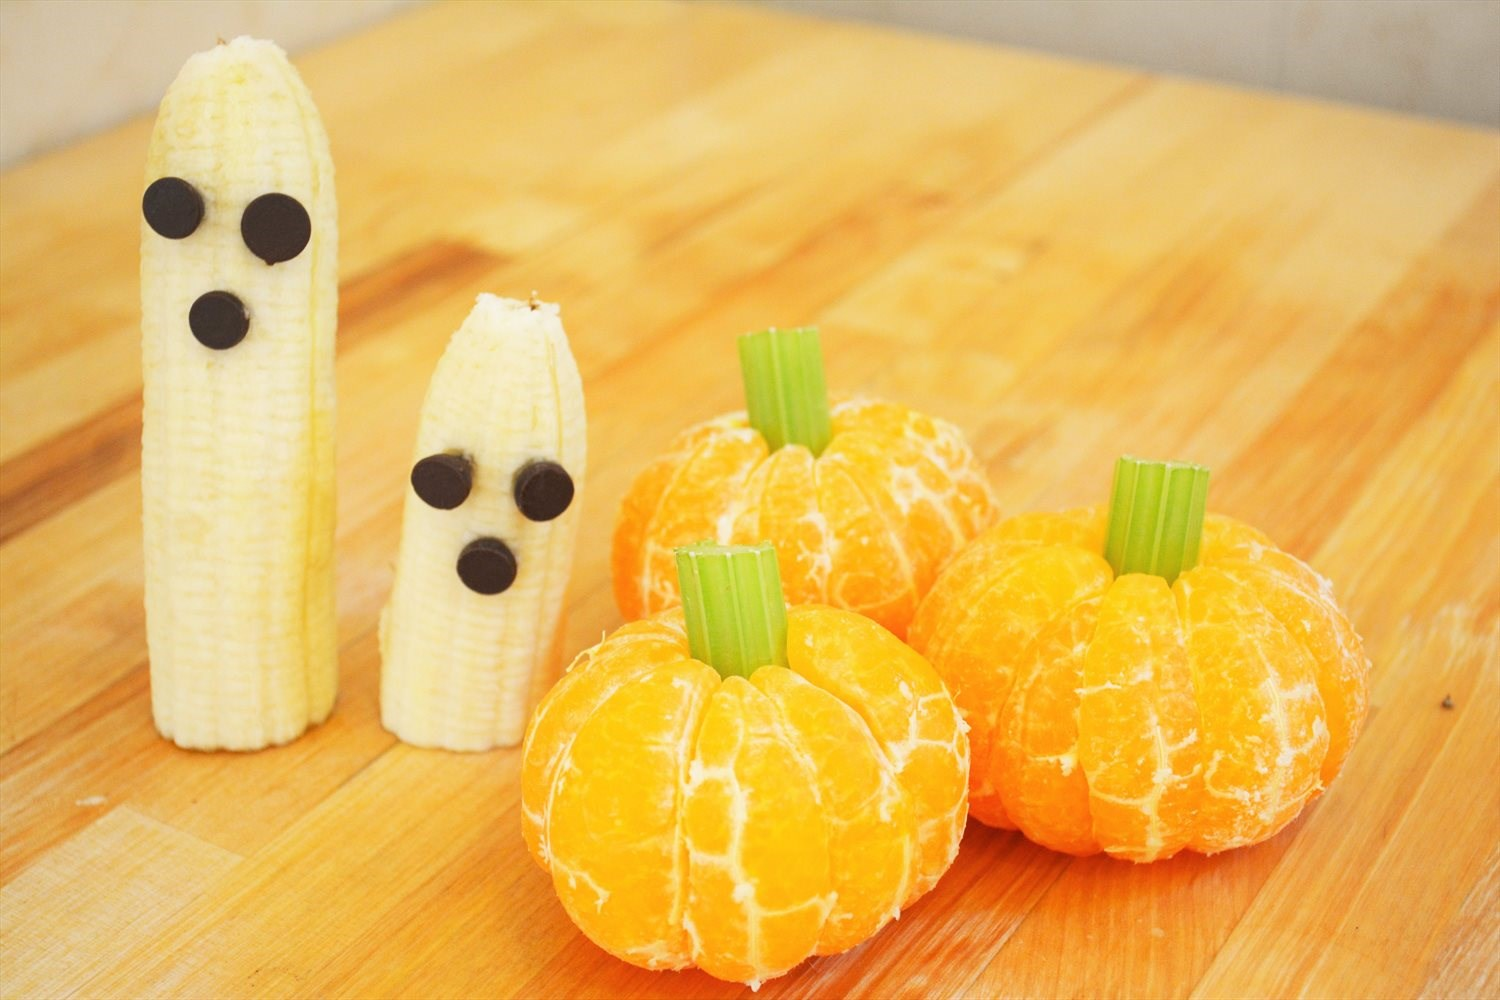 The Keys to a Healthy and Happy Halloween